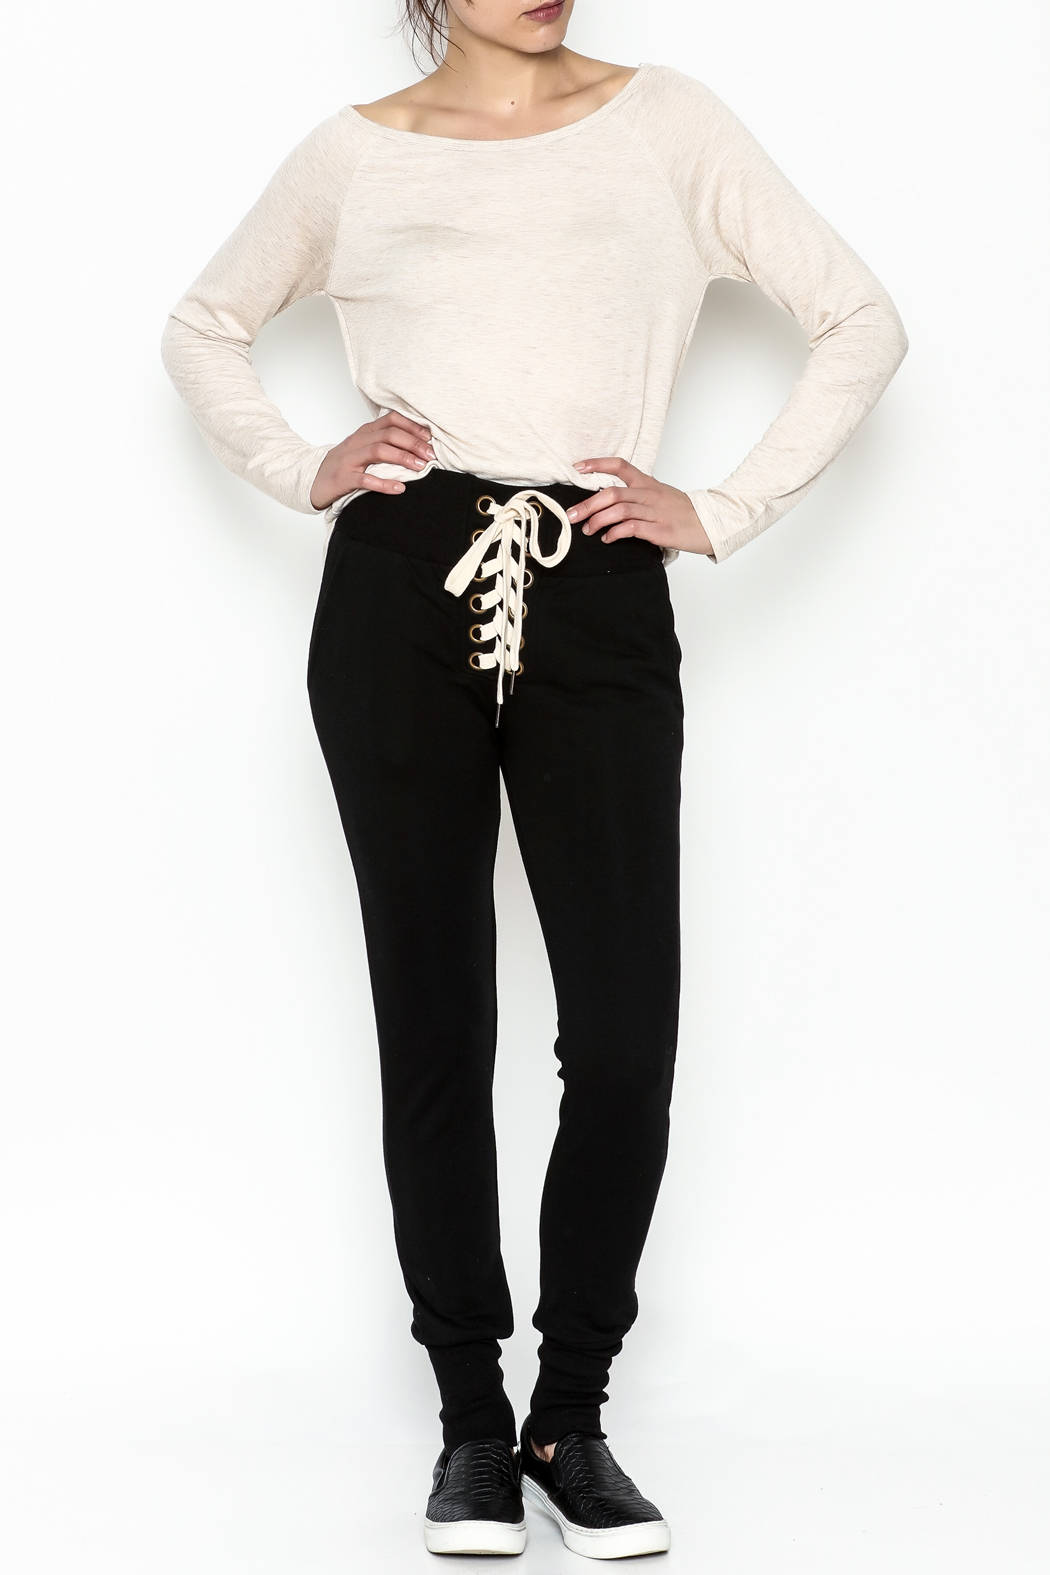 jella c Tie Front Pants - Side Cropped Image